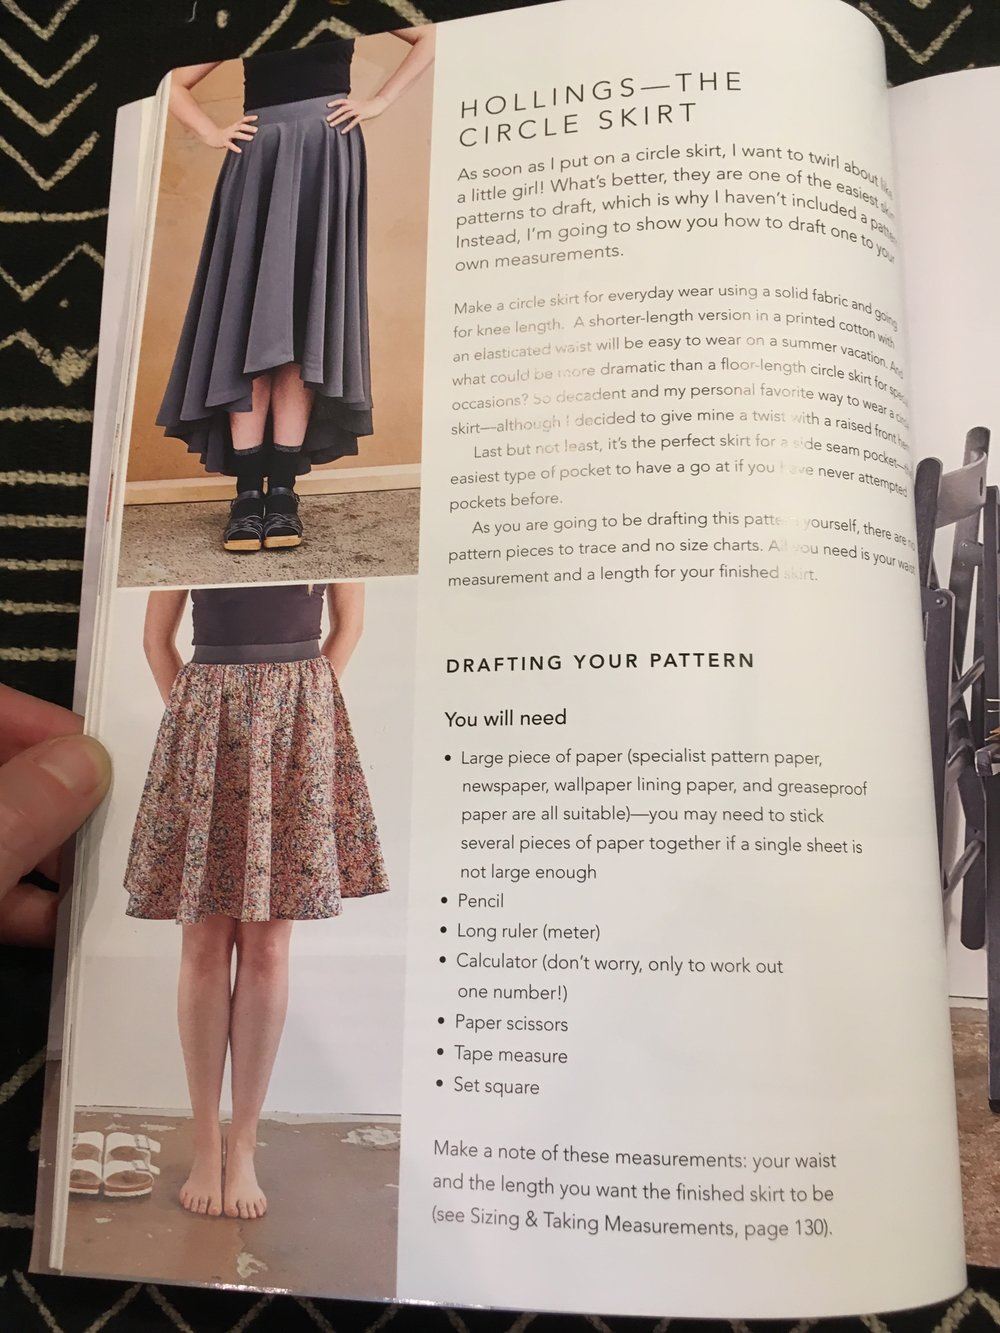 A beginners guide to sewing skirts by wendy ward bolt neighborhood of classic skirt patterns is a great addition to your pattern or sewing resource library wendy wards instructions are thorough and she offers a ton of jeuxipadfo Gallery